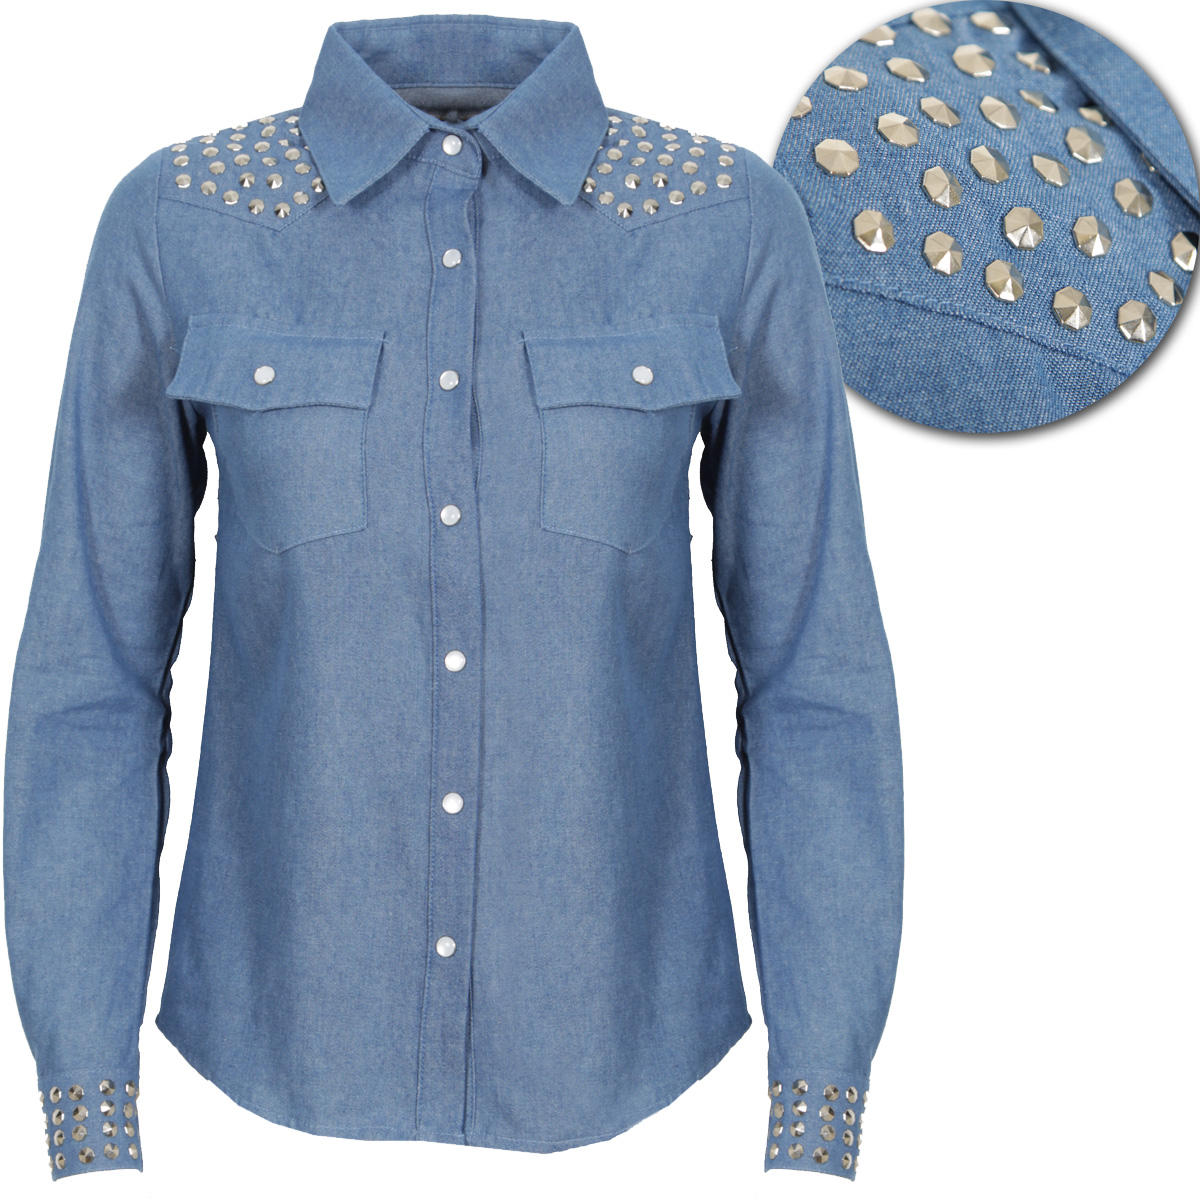 Blue Studded Denim Shirt Preview